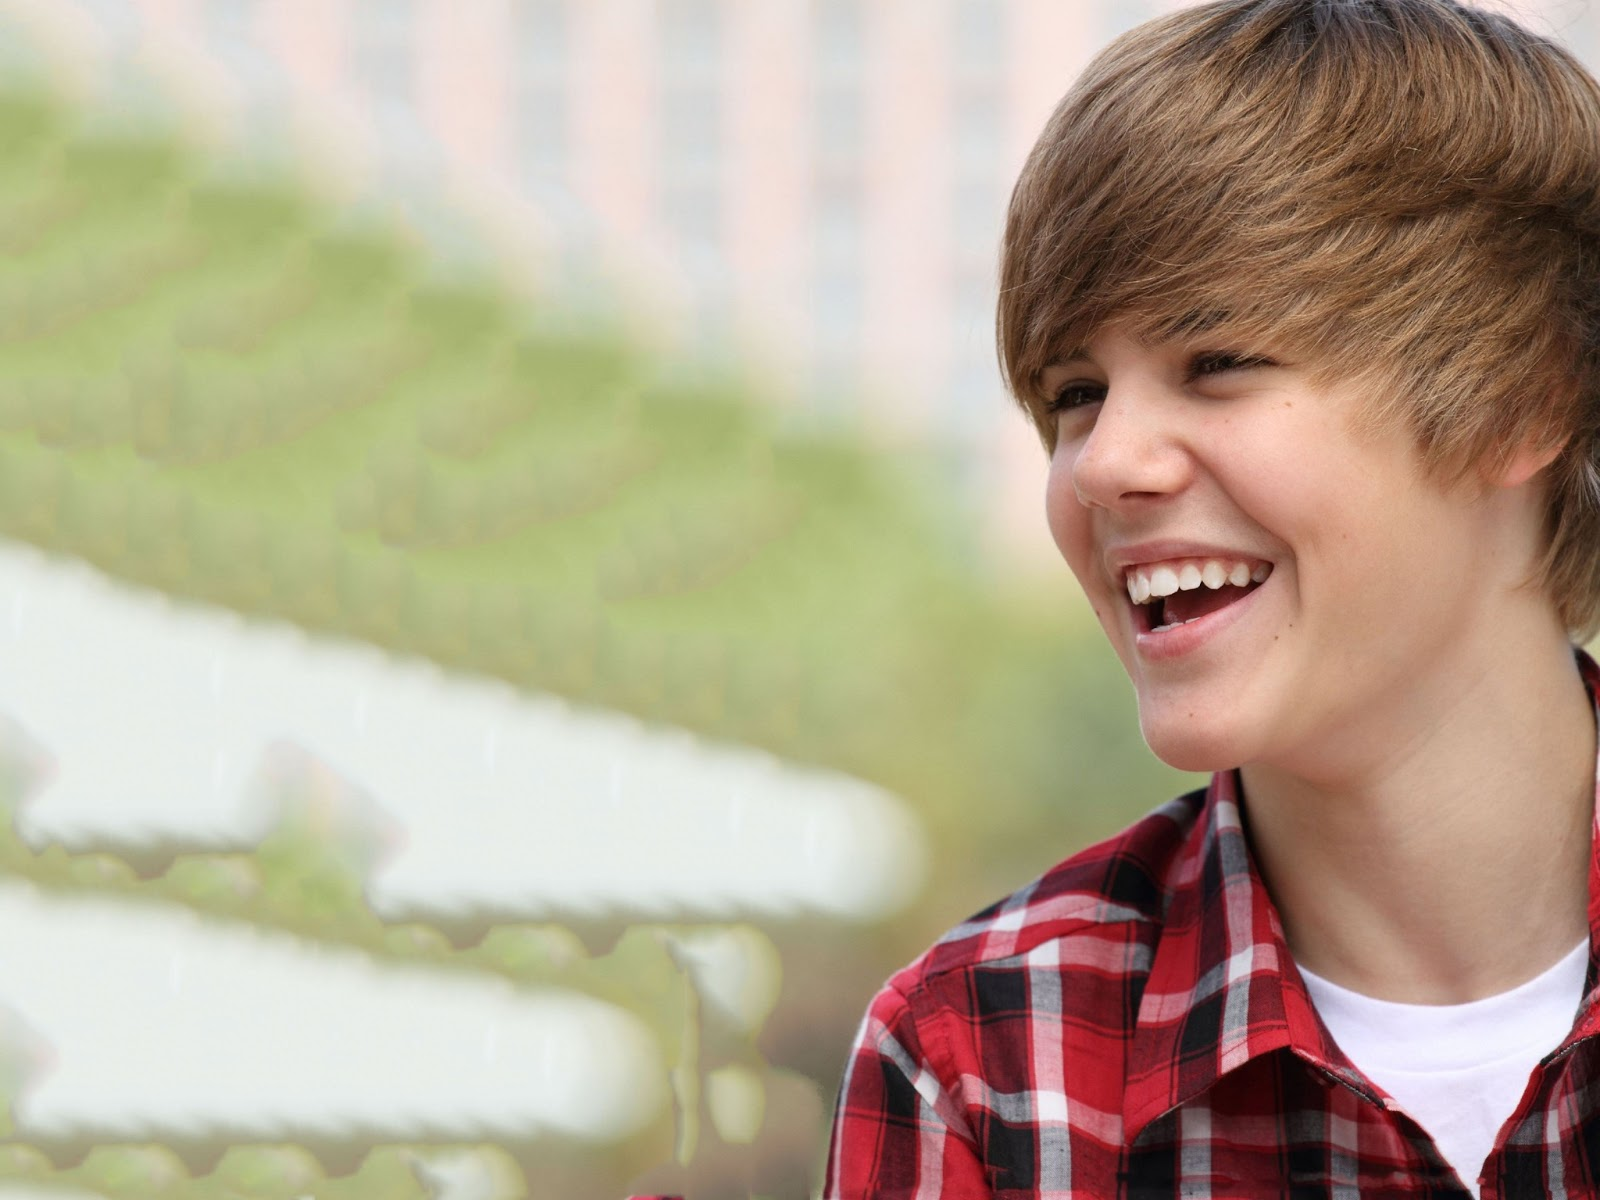 Justin Bieber is Laughing